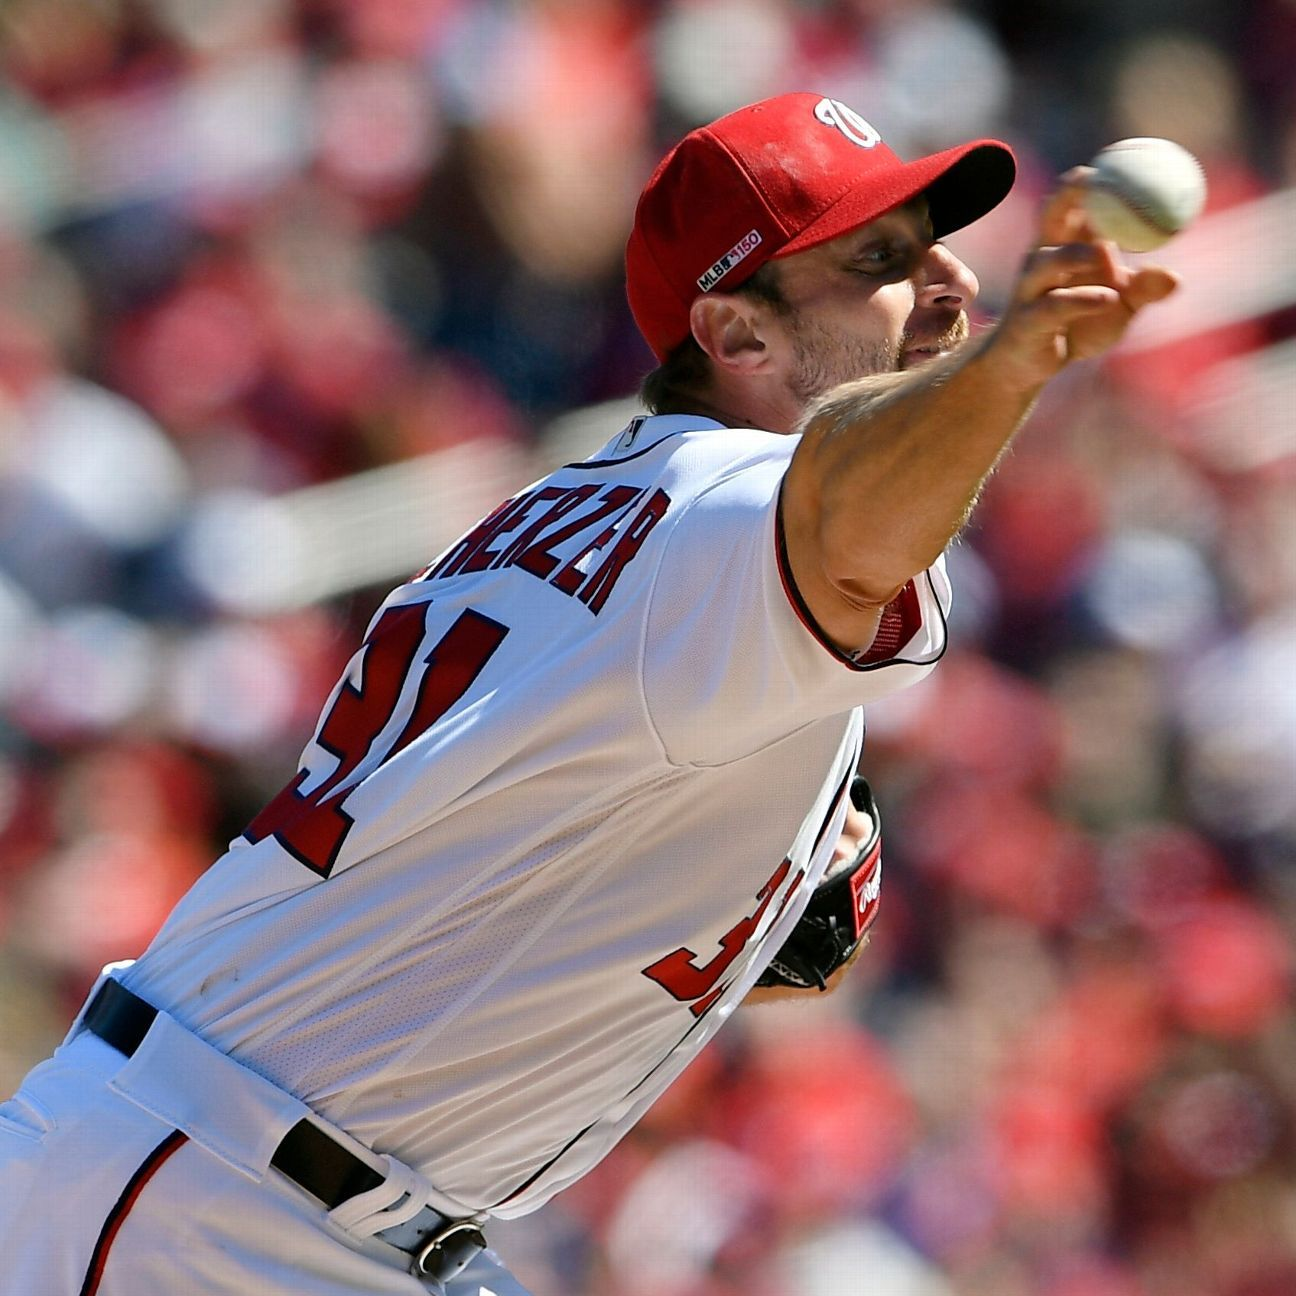 Nationals pitcher Max Scherzer has supplanted Angels